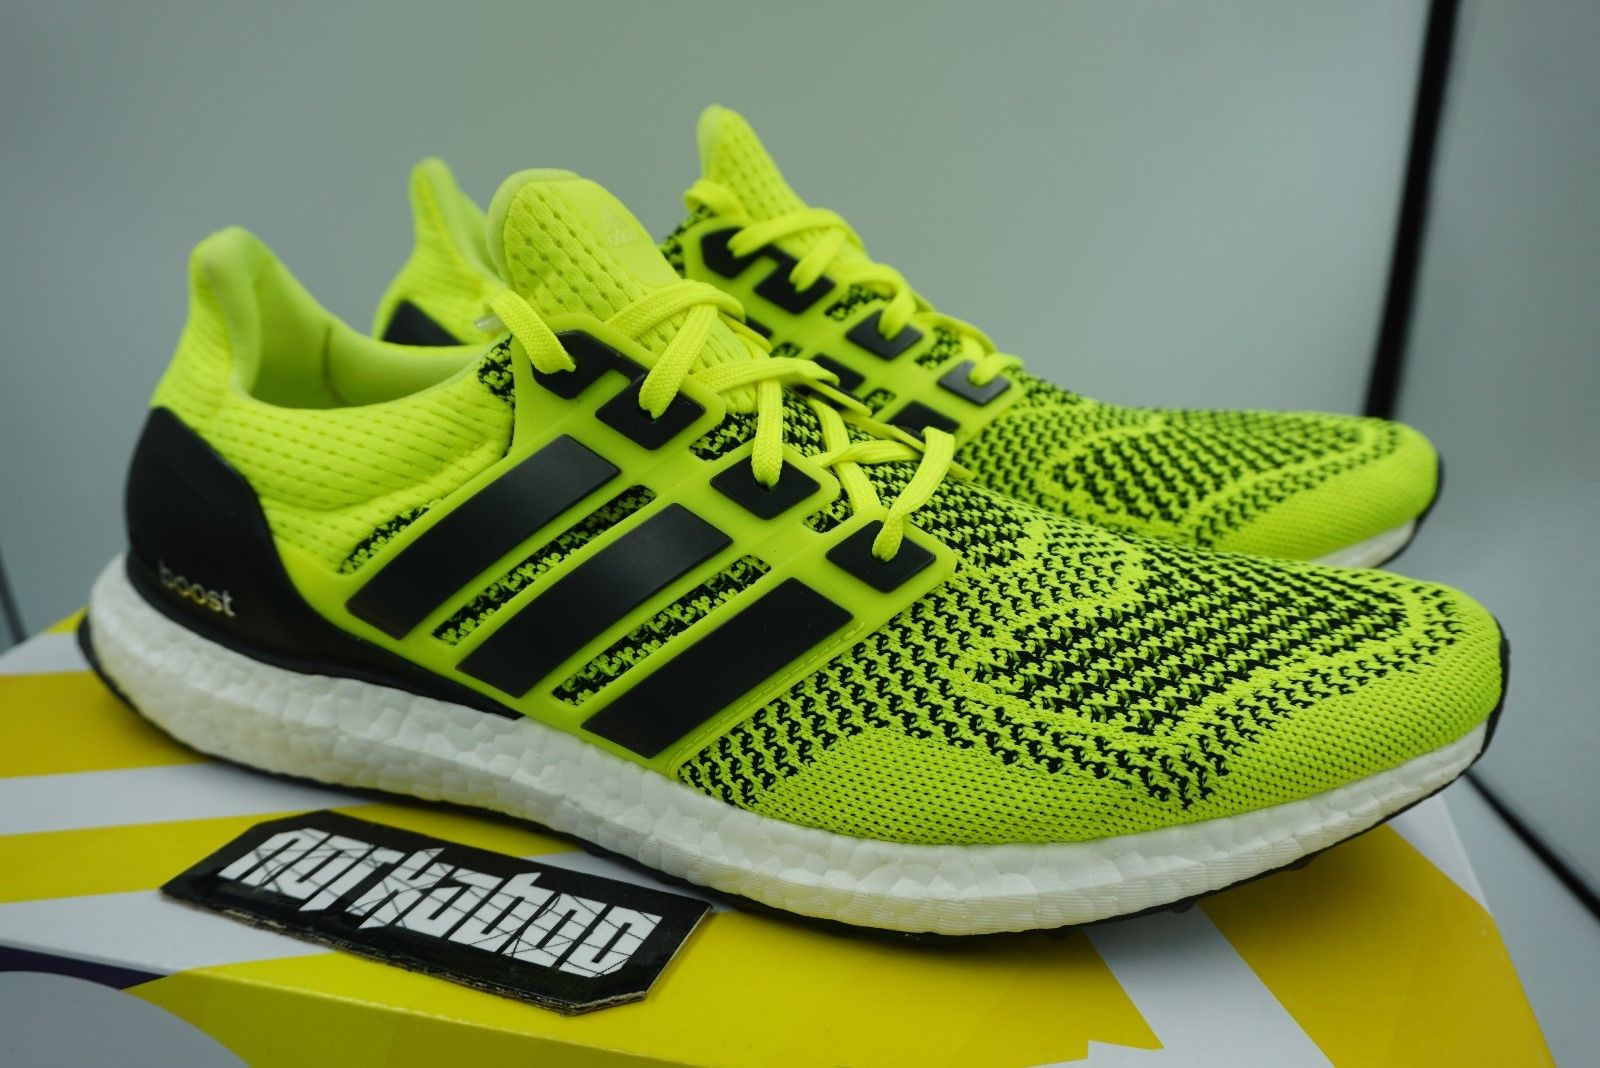 Adidas Adidas Ultra Boost 1.0 Volt Solar Yellow S77414 Size 8 - Low-Top  Sneakers for Sale - Grailed eb71c9d38